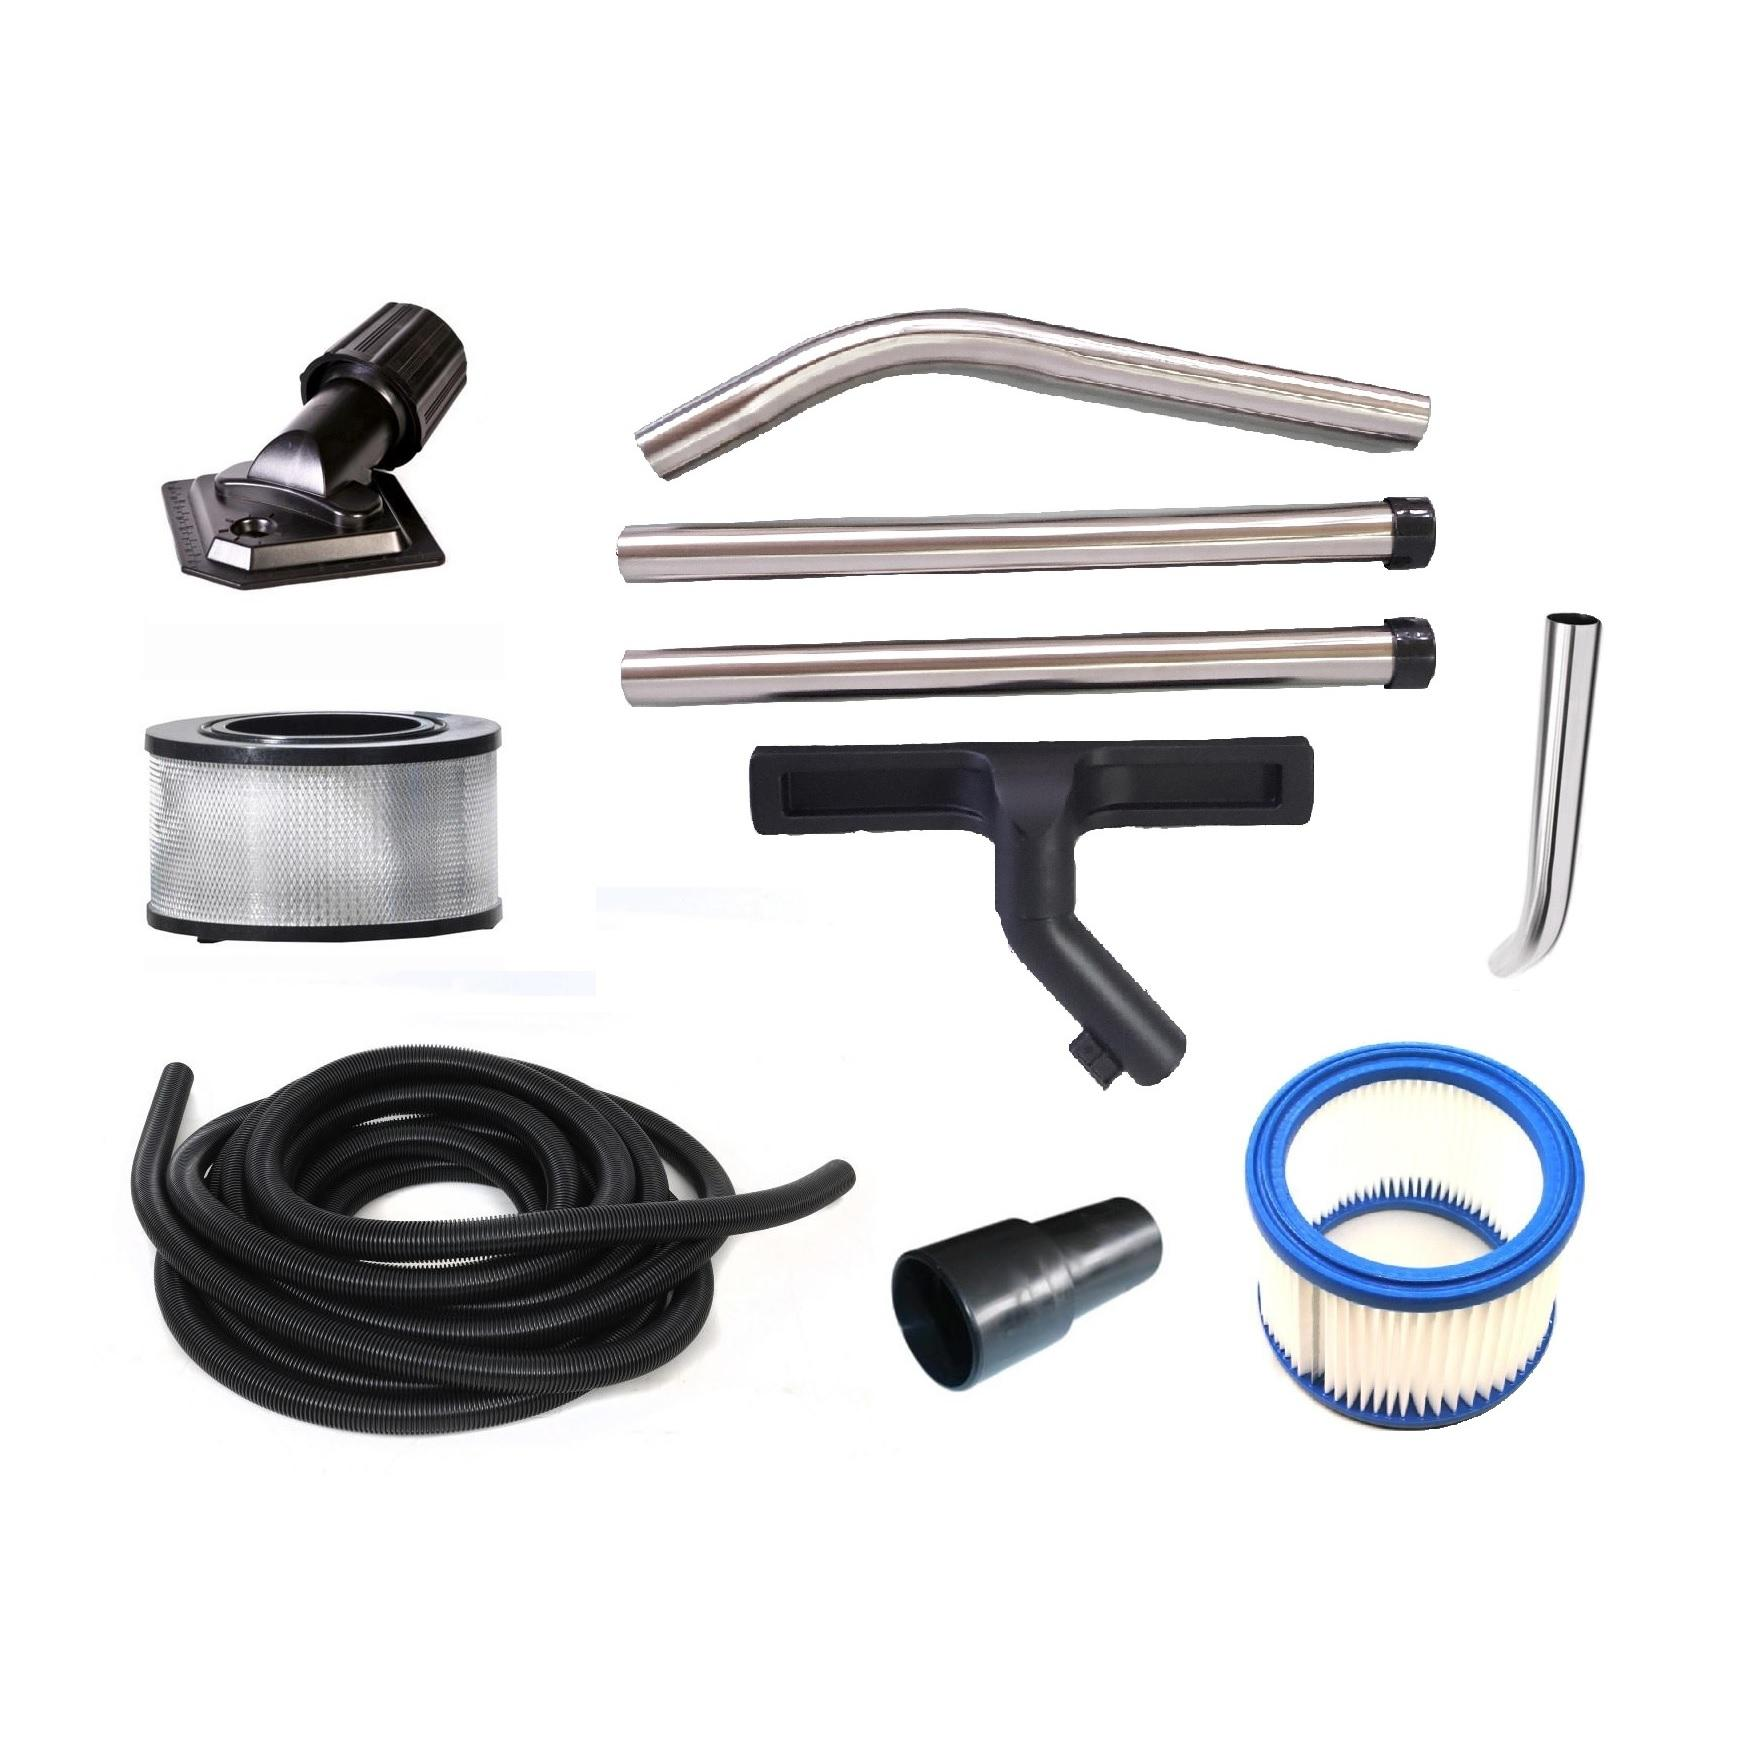 03. Vacuum Accessories